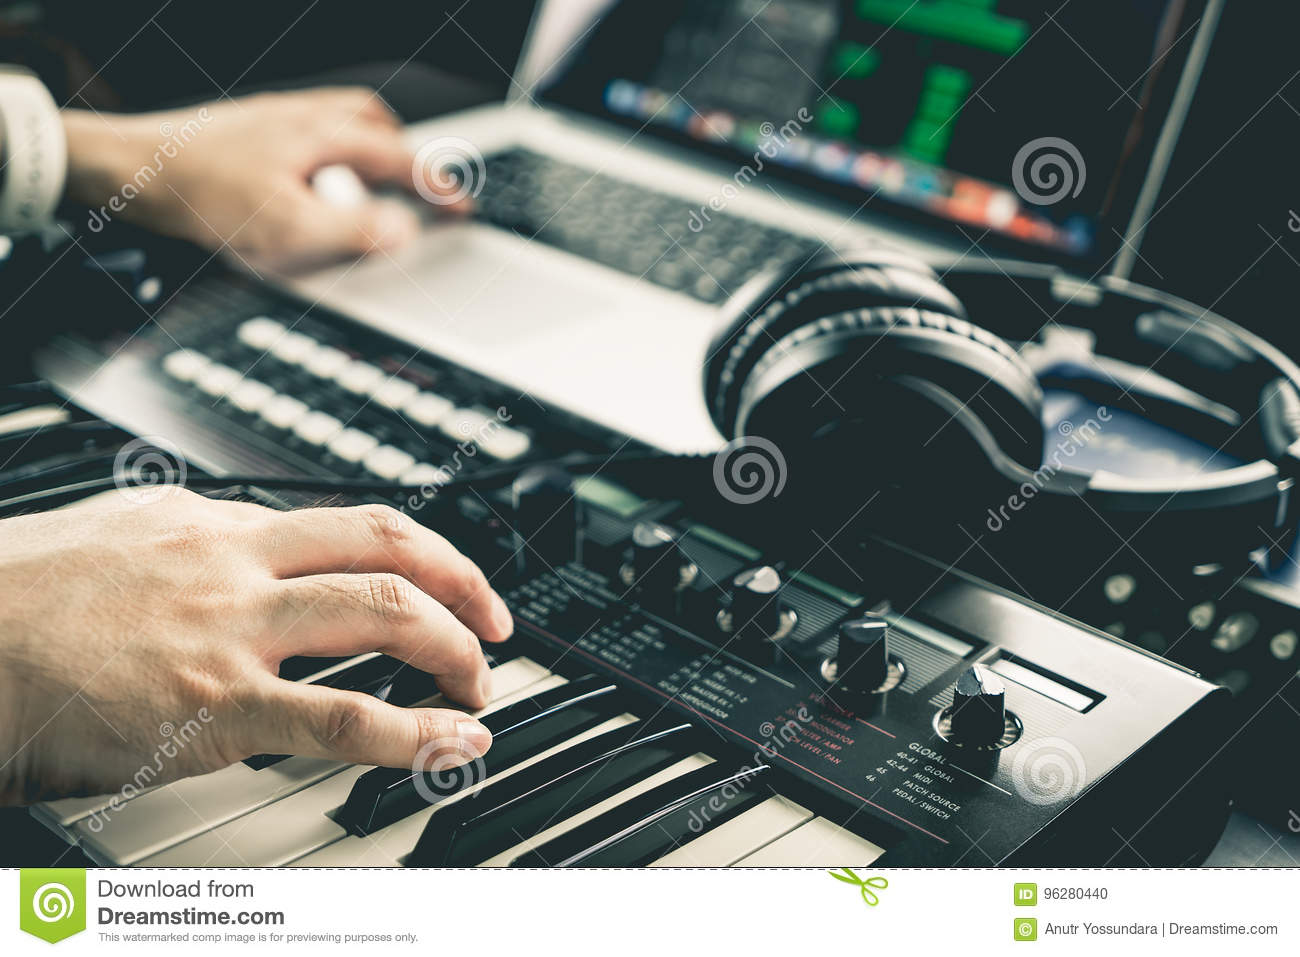 Music producer is recording sound